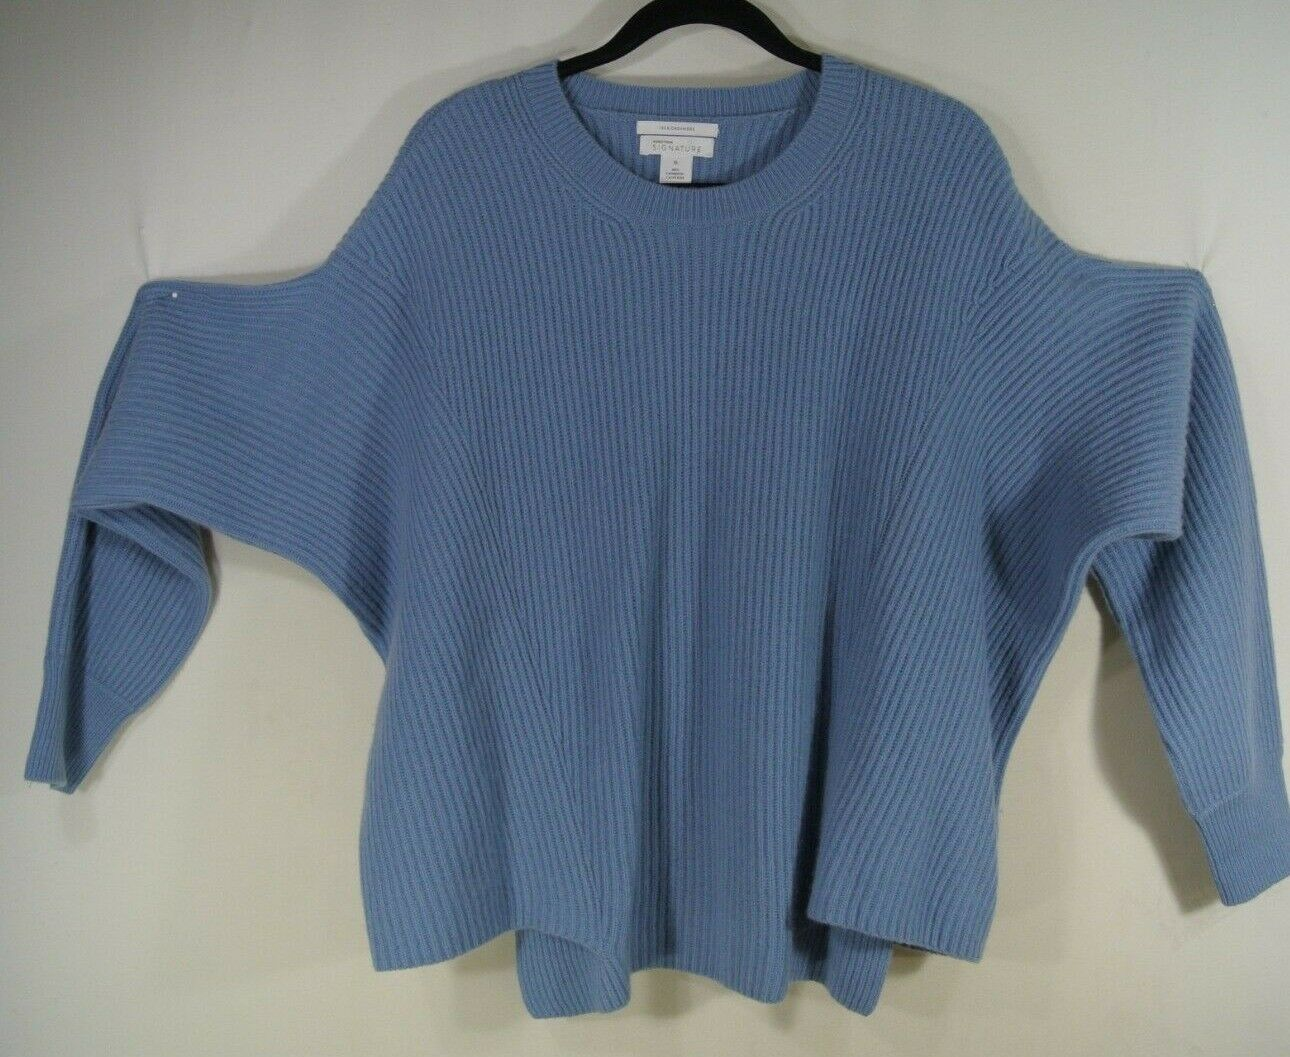 NEW Nordstrom Signature Rib Knit Cashmere Sweater in bluee - Size XL